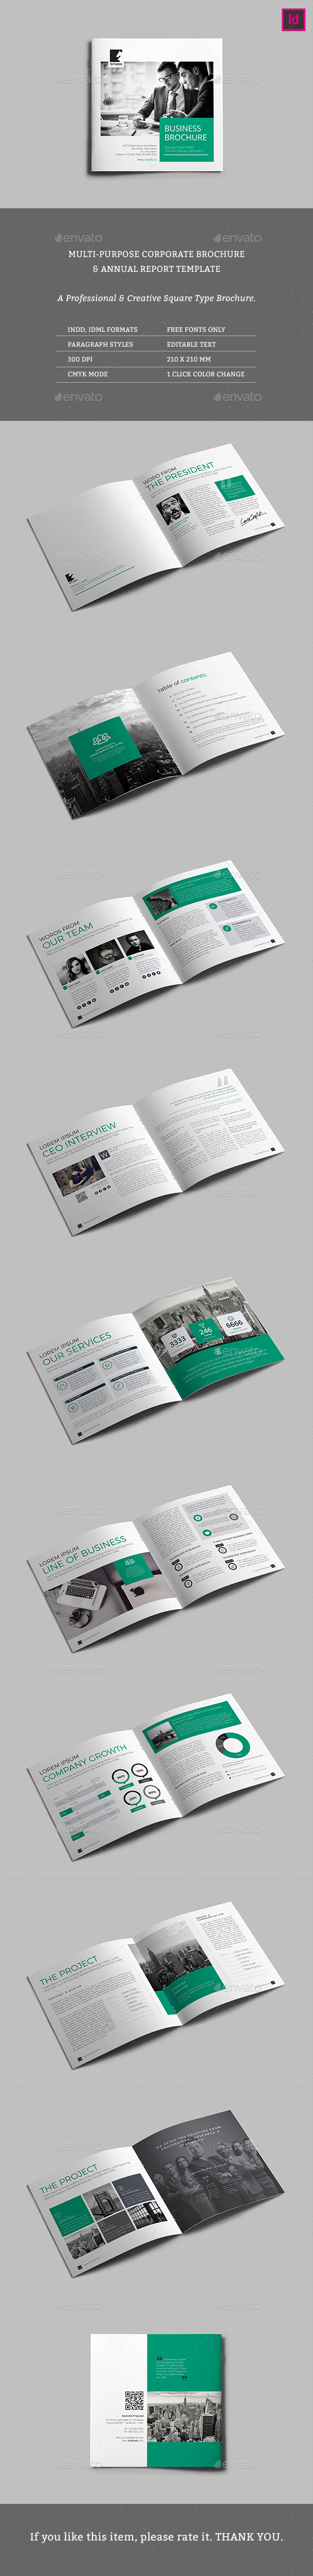 Square Access Multipurpose Brochure - Corporate Brochures